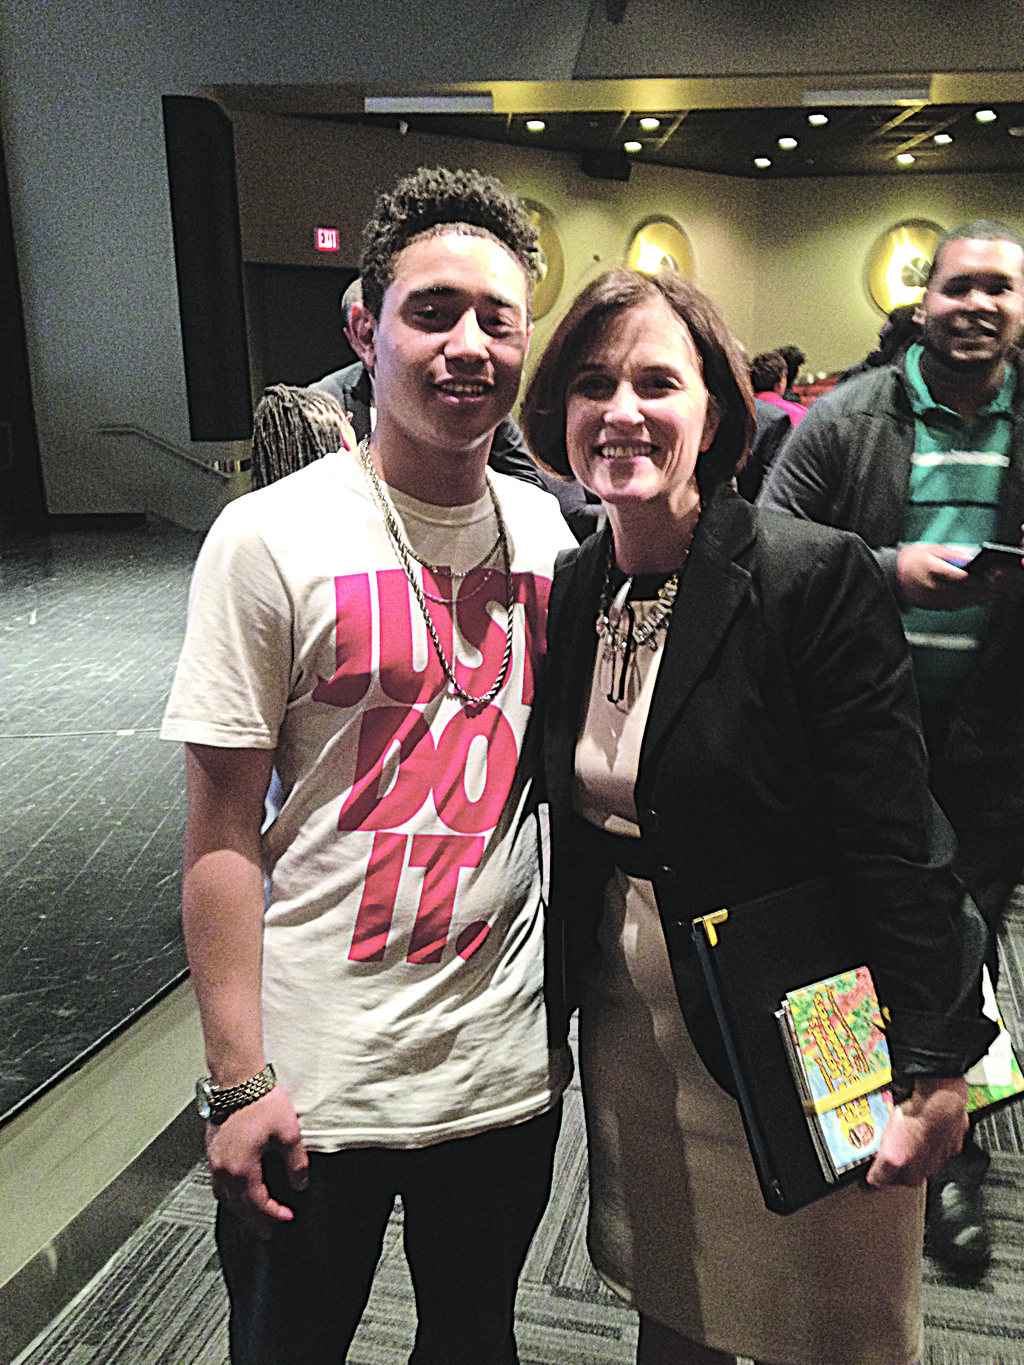 Mayor Betsy Hodges, right, with an unidentified participant in the U of M event